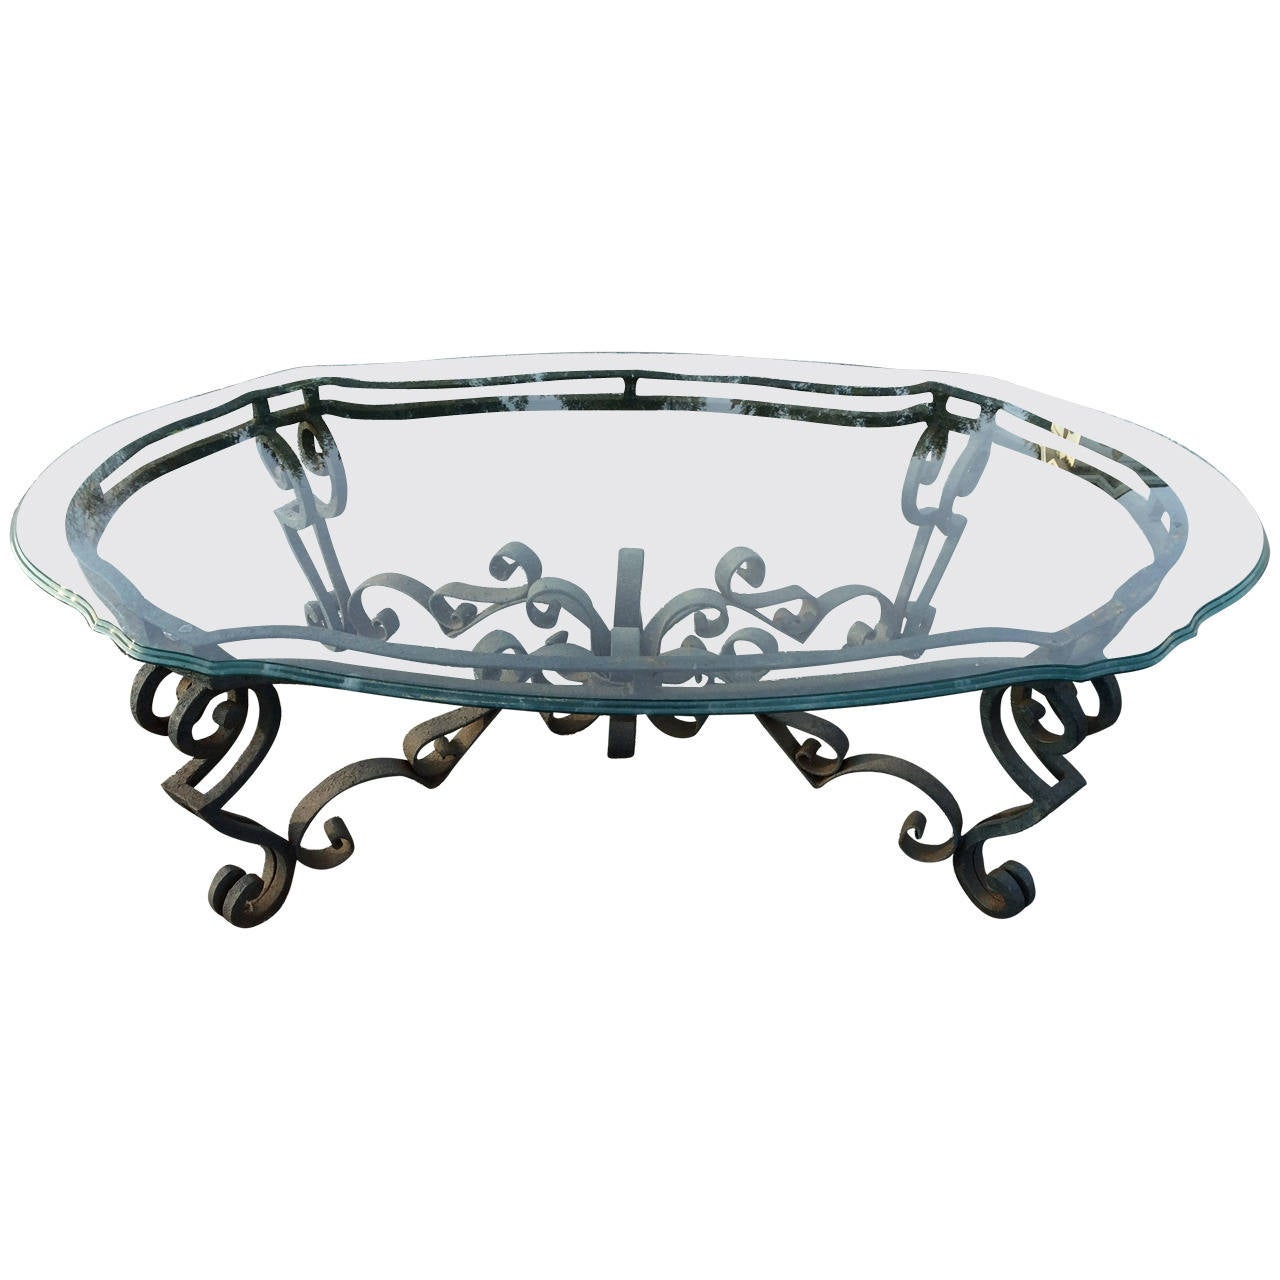 Hand wrought iron and glass coffee table at 1stdibs for Iron and glass coffee table